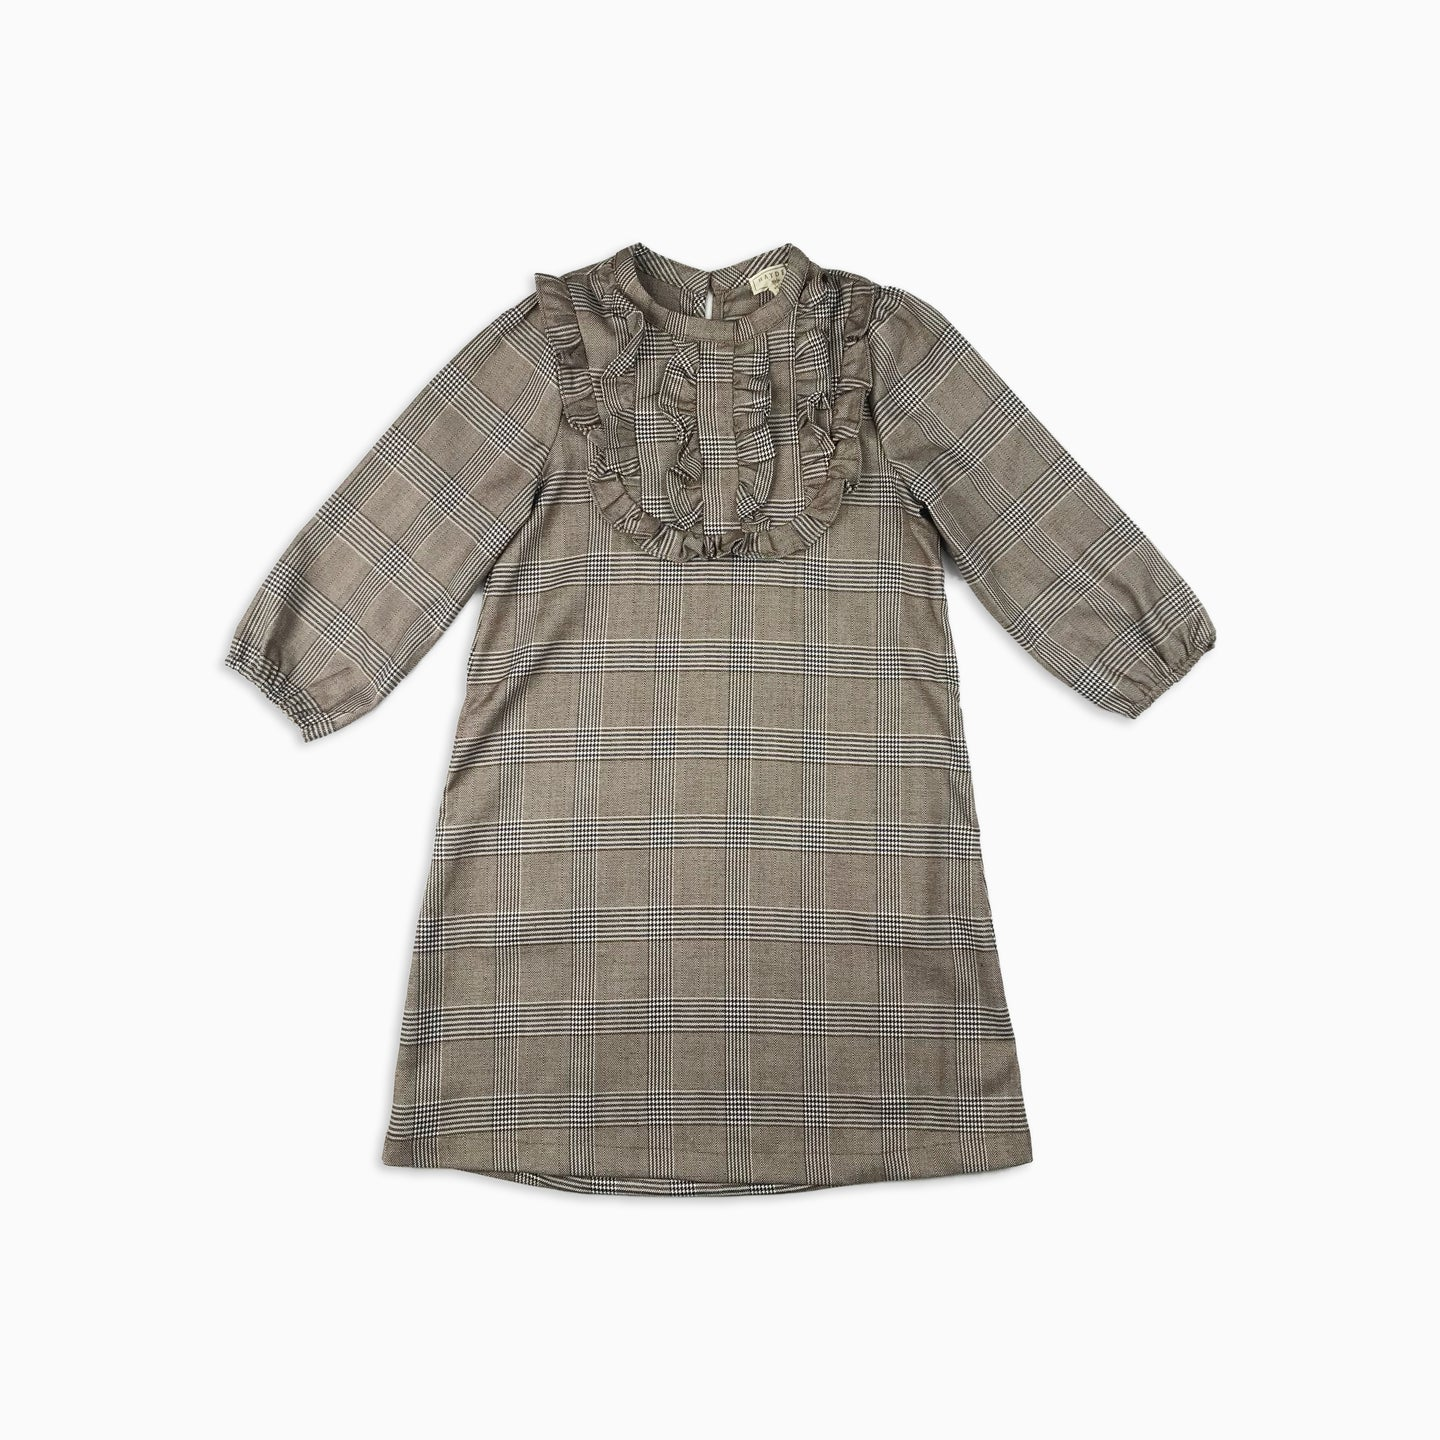 Baby Girl Clothes: view of plaid dress with ruffles